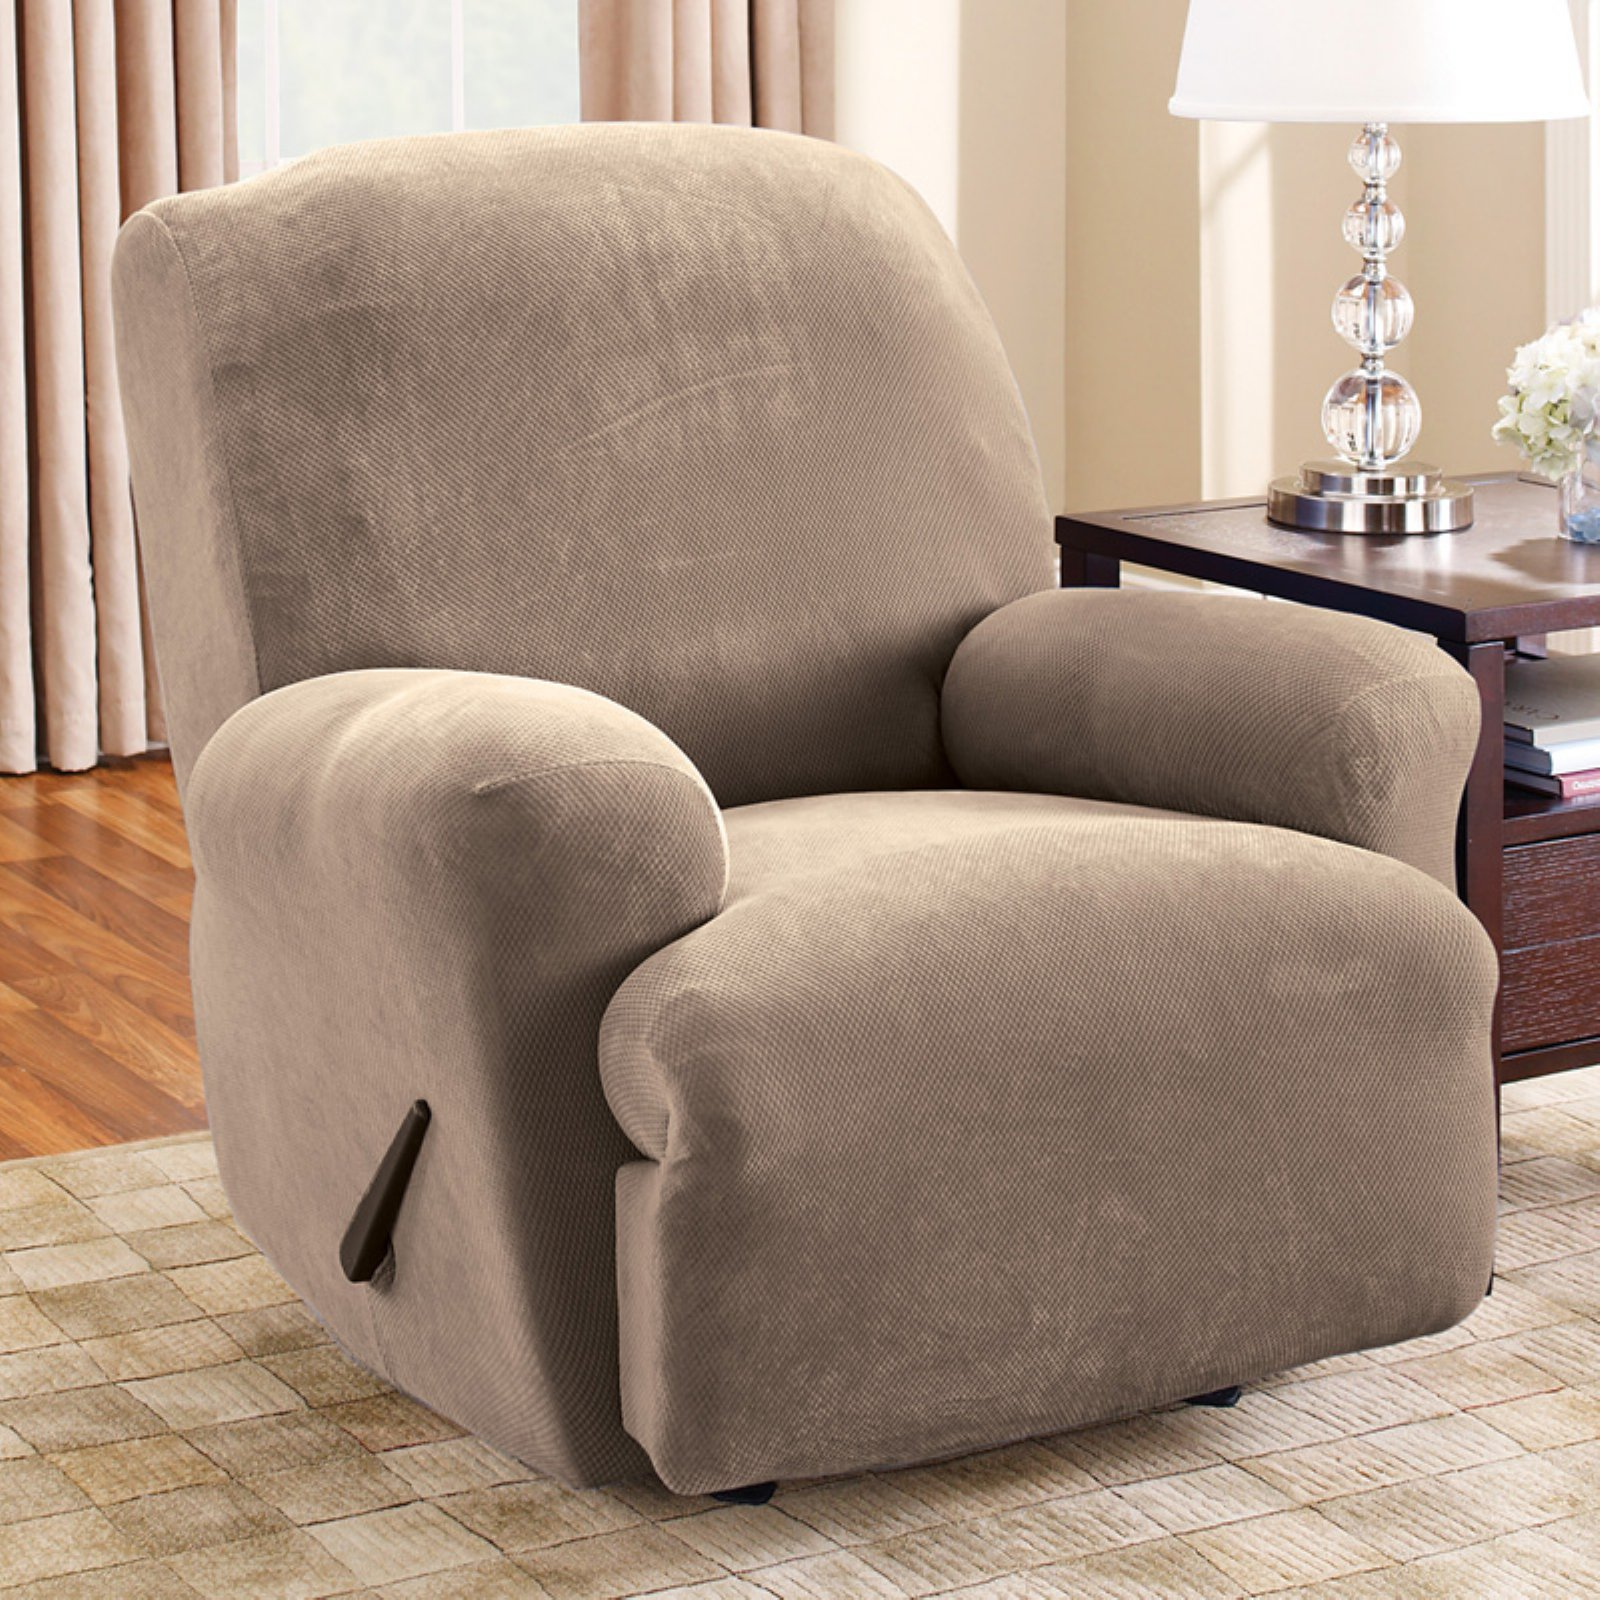 recliner pin corduroy slipcover taupe slipcovers pixel recliners sure stretch fit for